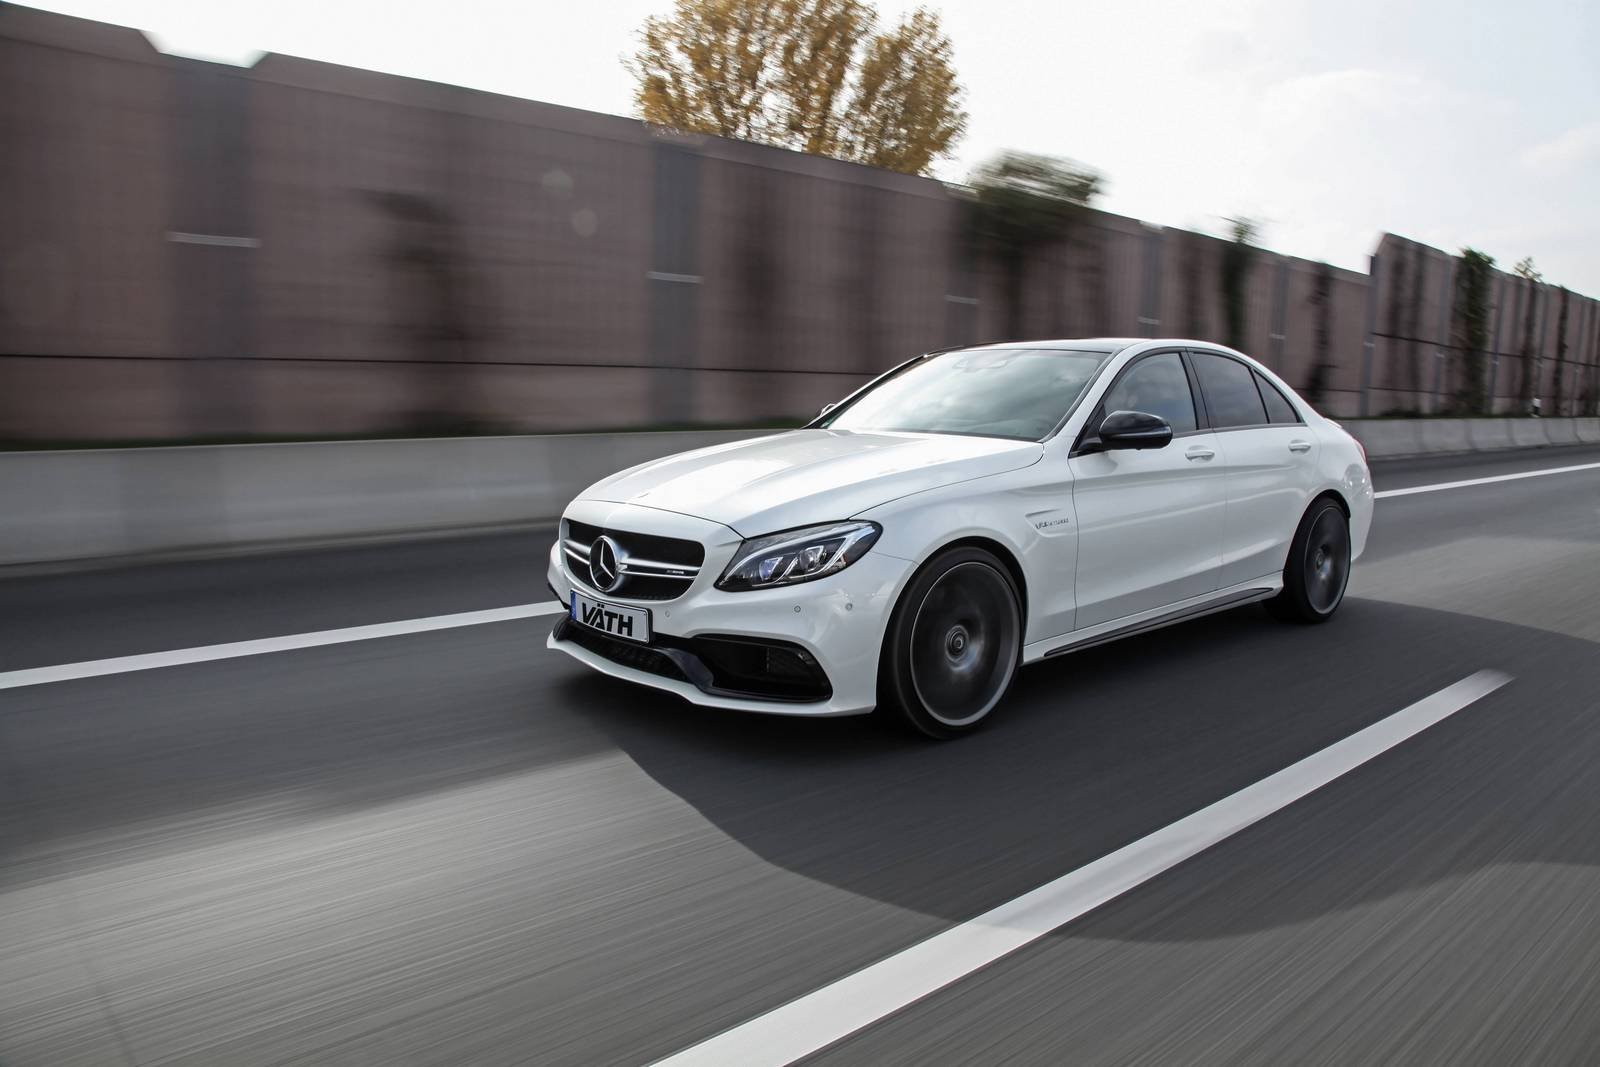 Official: 609hp Mercedes-AMG C63 by Vath